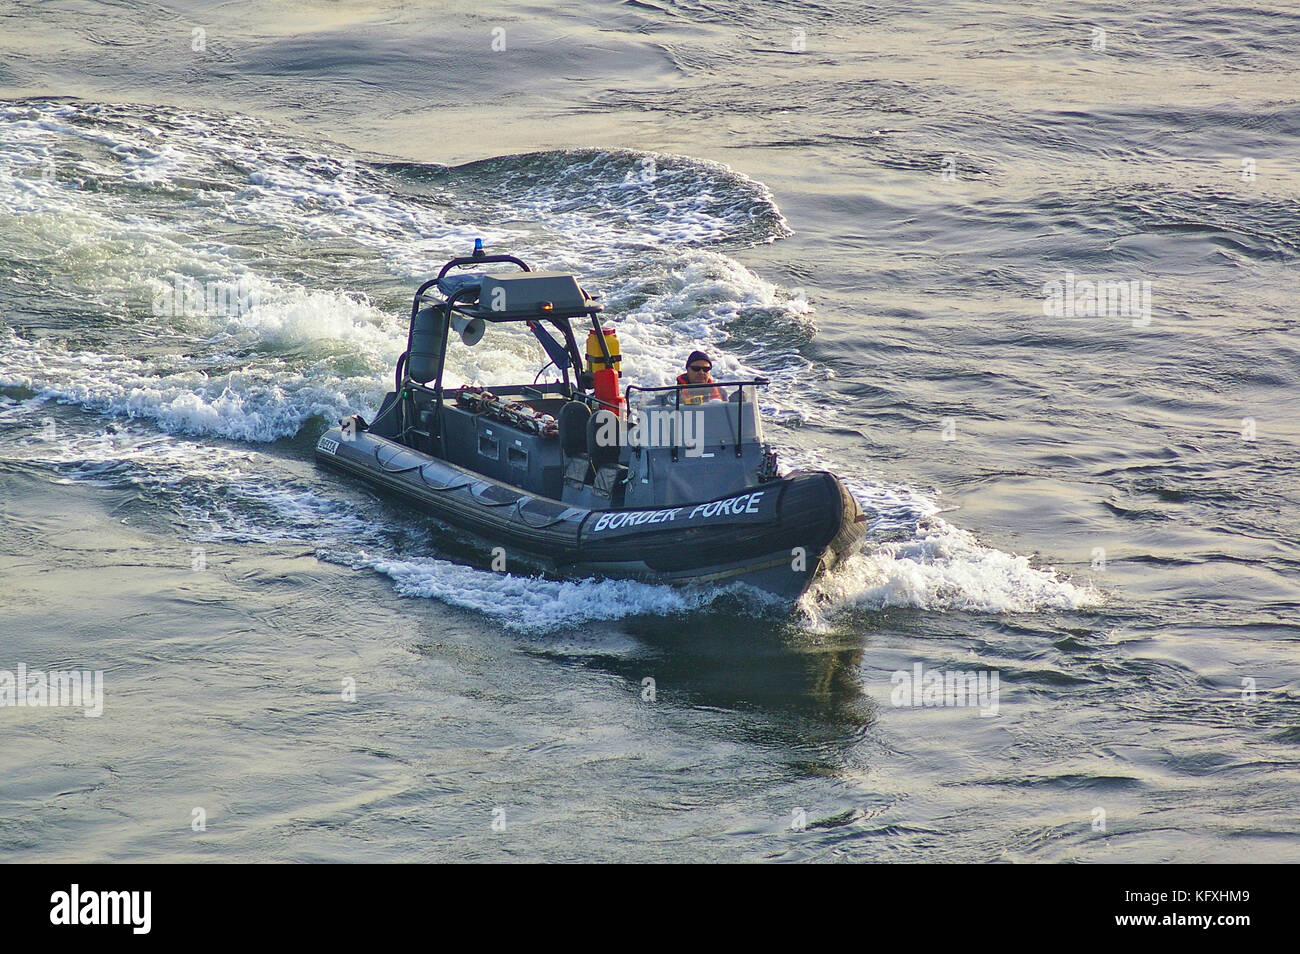 Newcastle, United Kingdom - October 5th, 2014 - UK border force RIB patrol boat with crew member - Stock Image